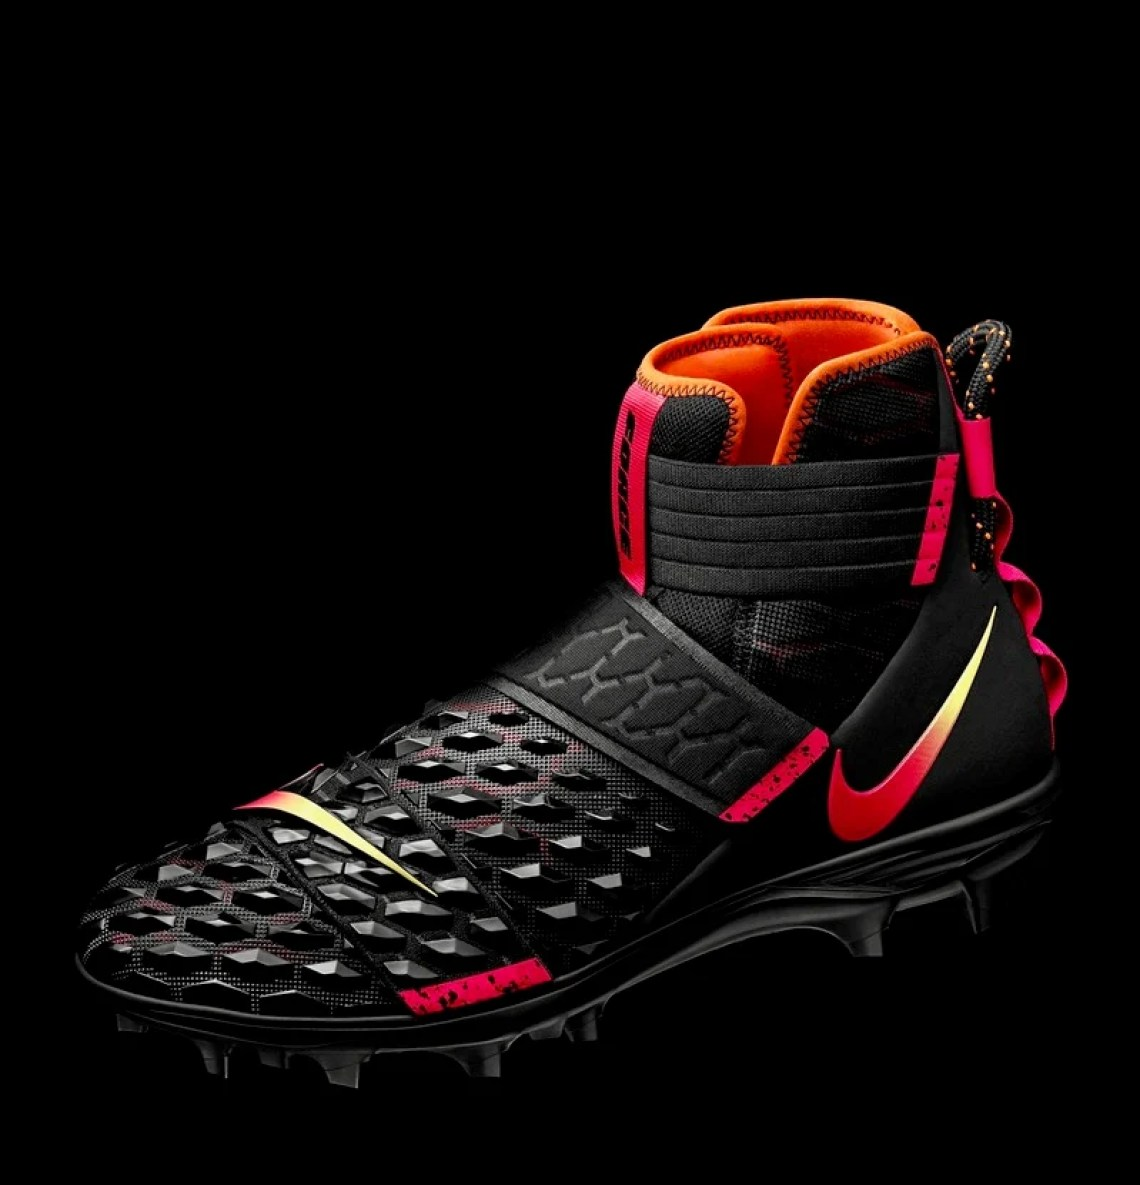 san francisco 7051f ab84a Designed for the most explosive players in the trenches like Mack and Cam  Jordan, the roundball-referencing Savage Elite 2 packs the personality  associated ...